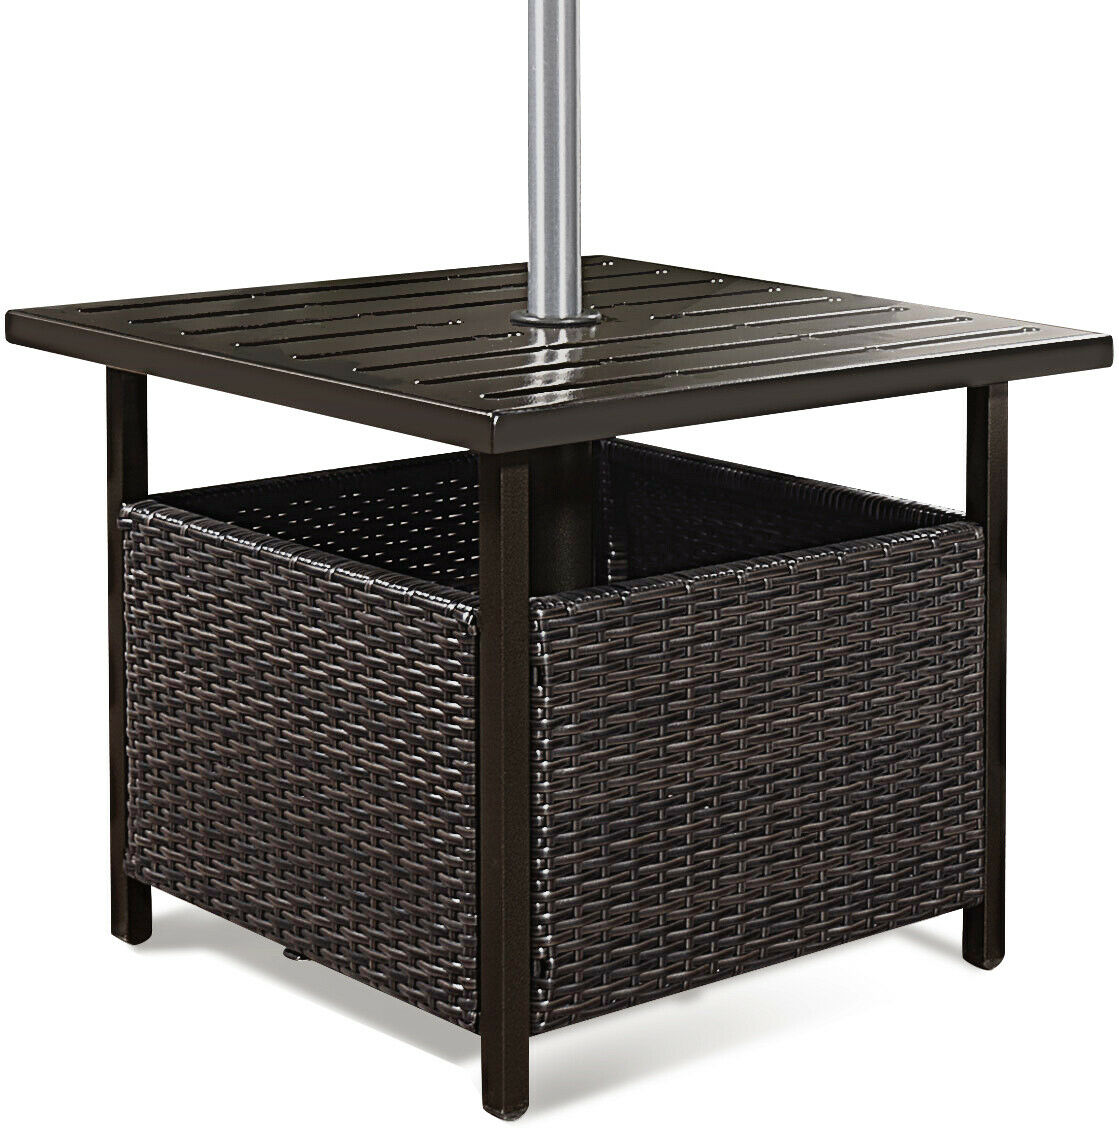 way brown rattan wicker steel side table outdoor black end furniture deck garden patio pool swing with canopy leick laurent hall console height lamps kmart sets coupon code sofa